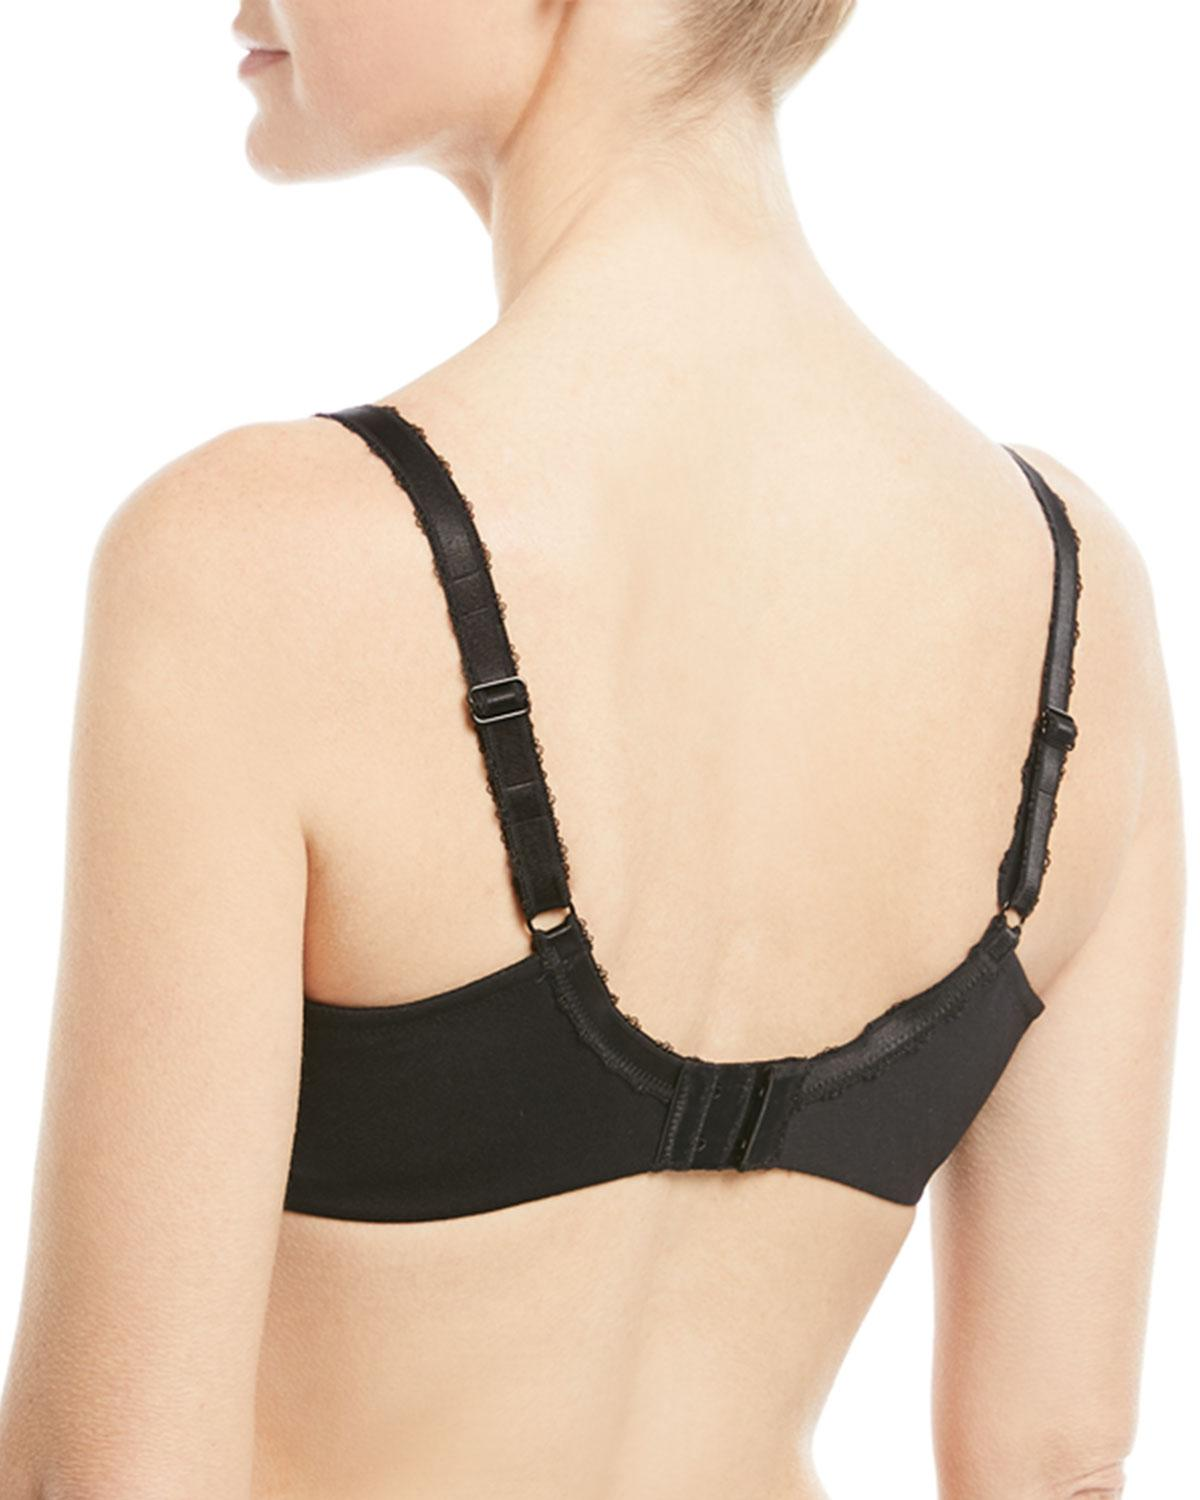 1feb7ff36a Lyst - Wacoal Top Tier Lace Underwire Bra in Black - Save 70.0%